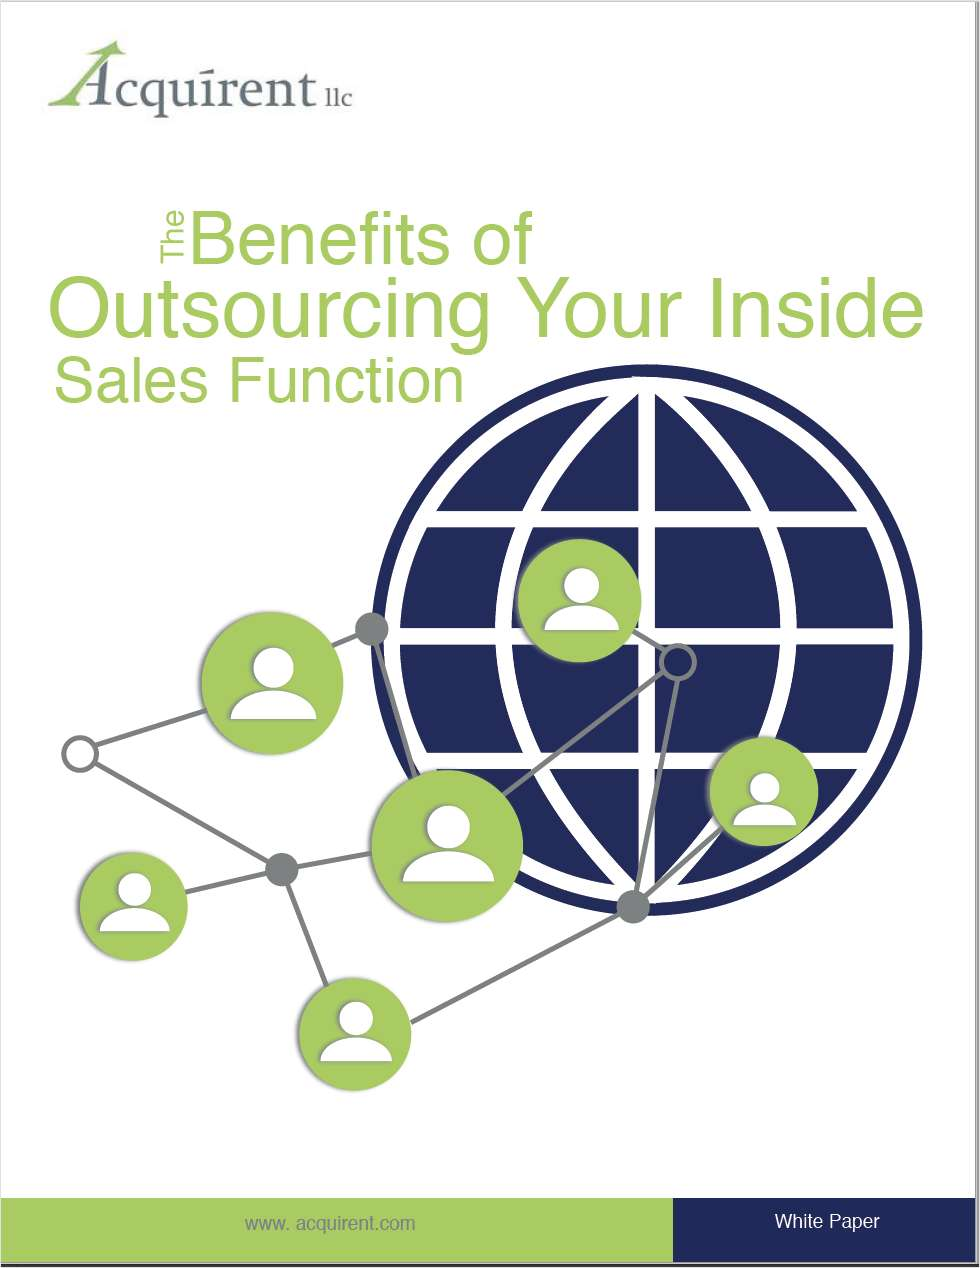 The Benefits of Outsourcing Your Inside Sales Function